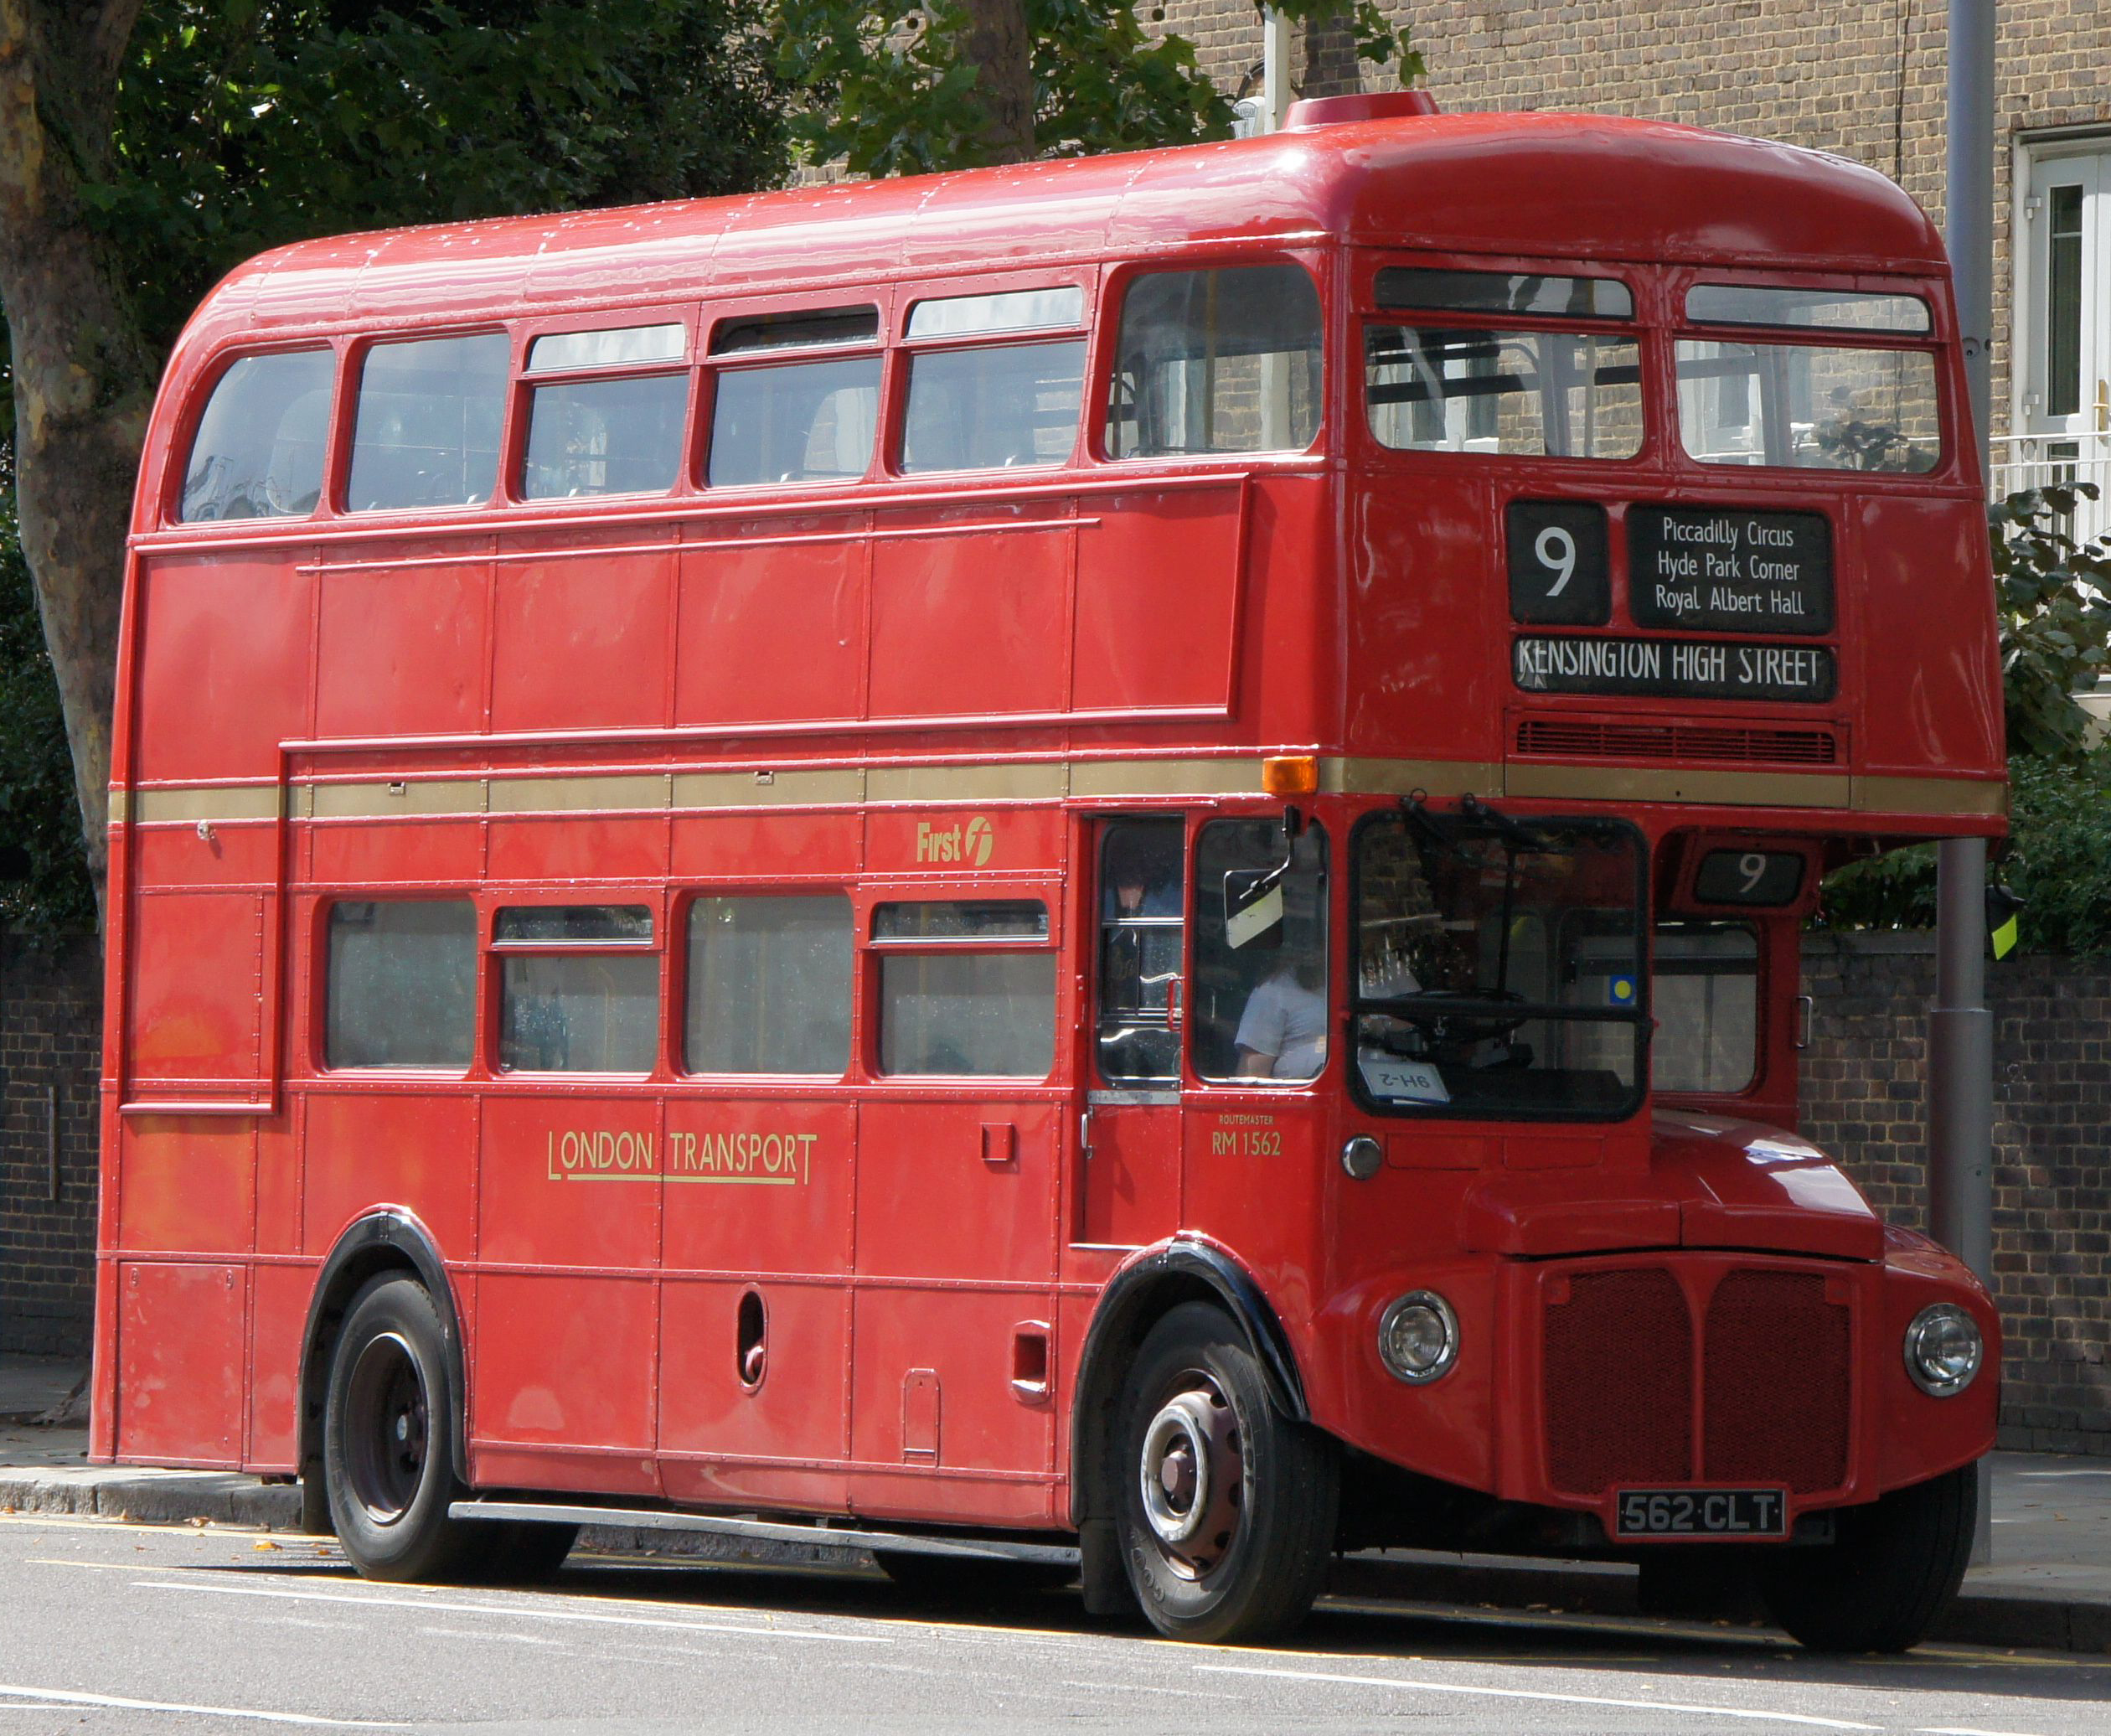 Аутобуси First_London_Routemaster_bus_RM1562_(562_CLT),_heritage_route_9,_Kensington_High_Street,_27_August_2011_(1)